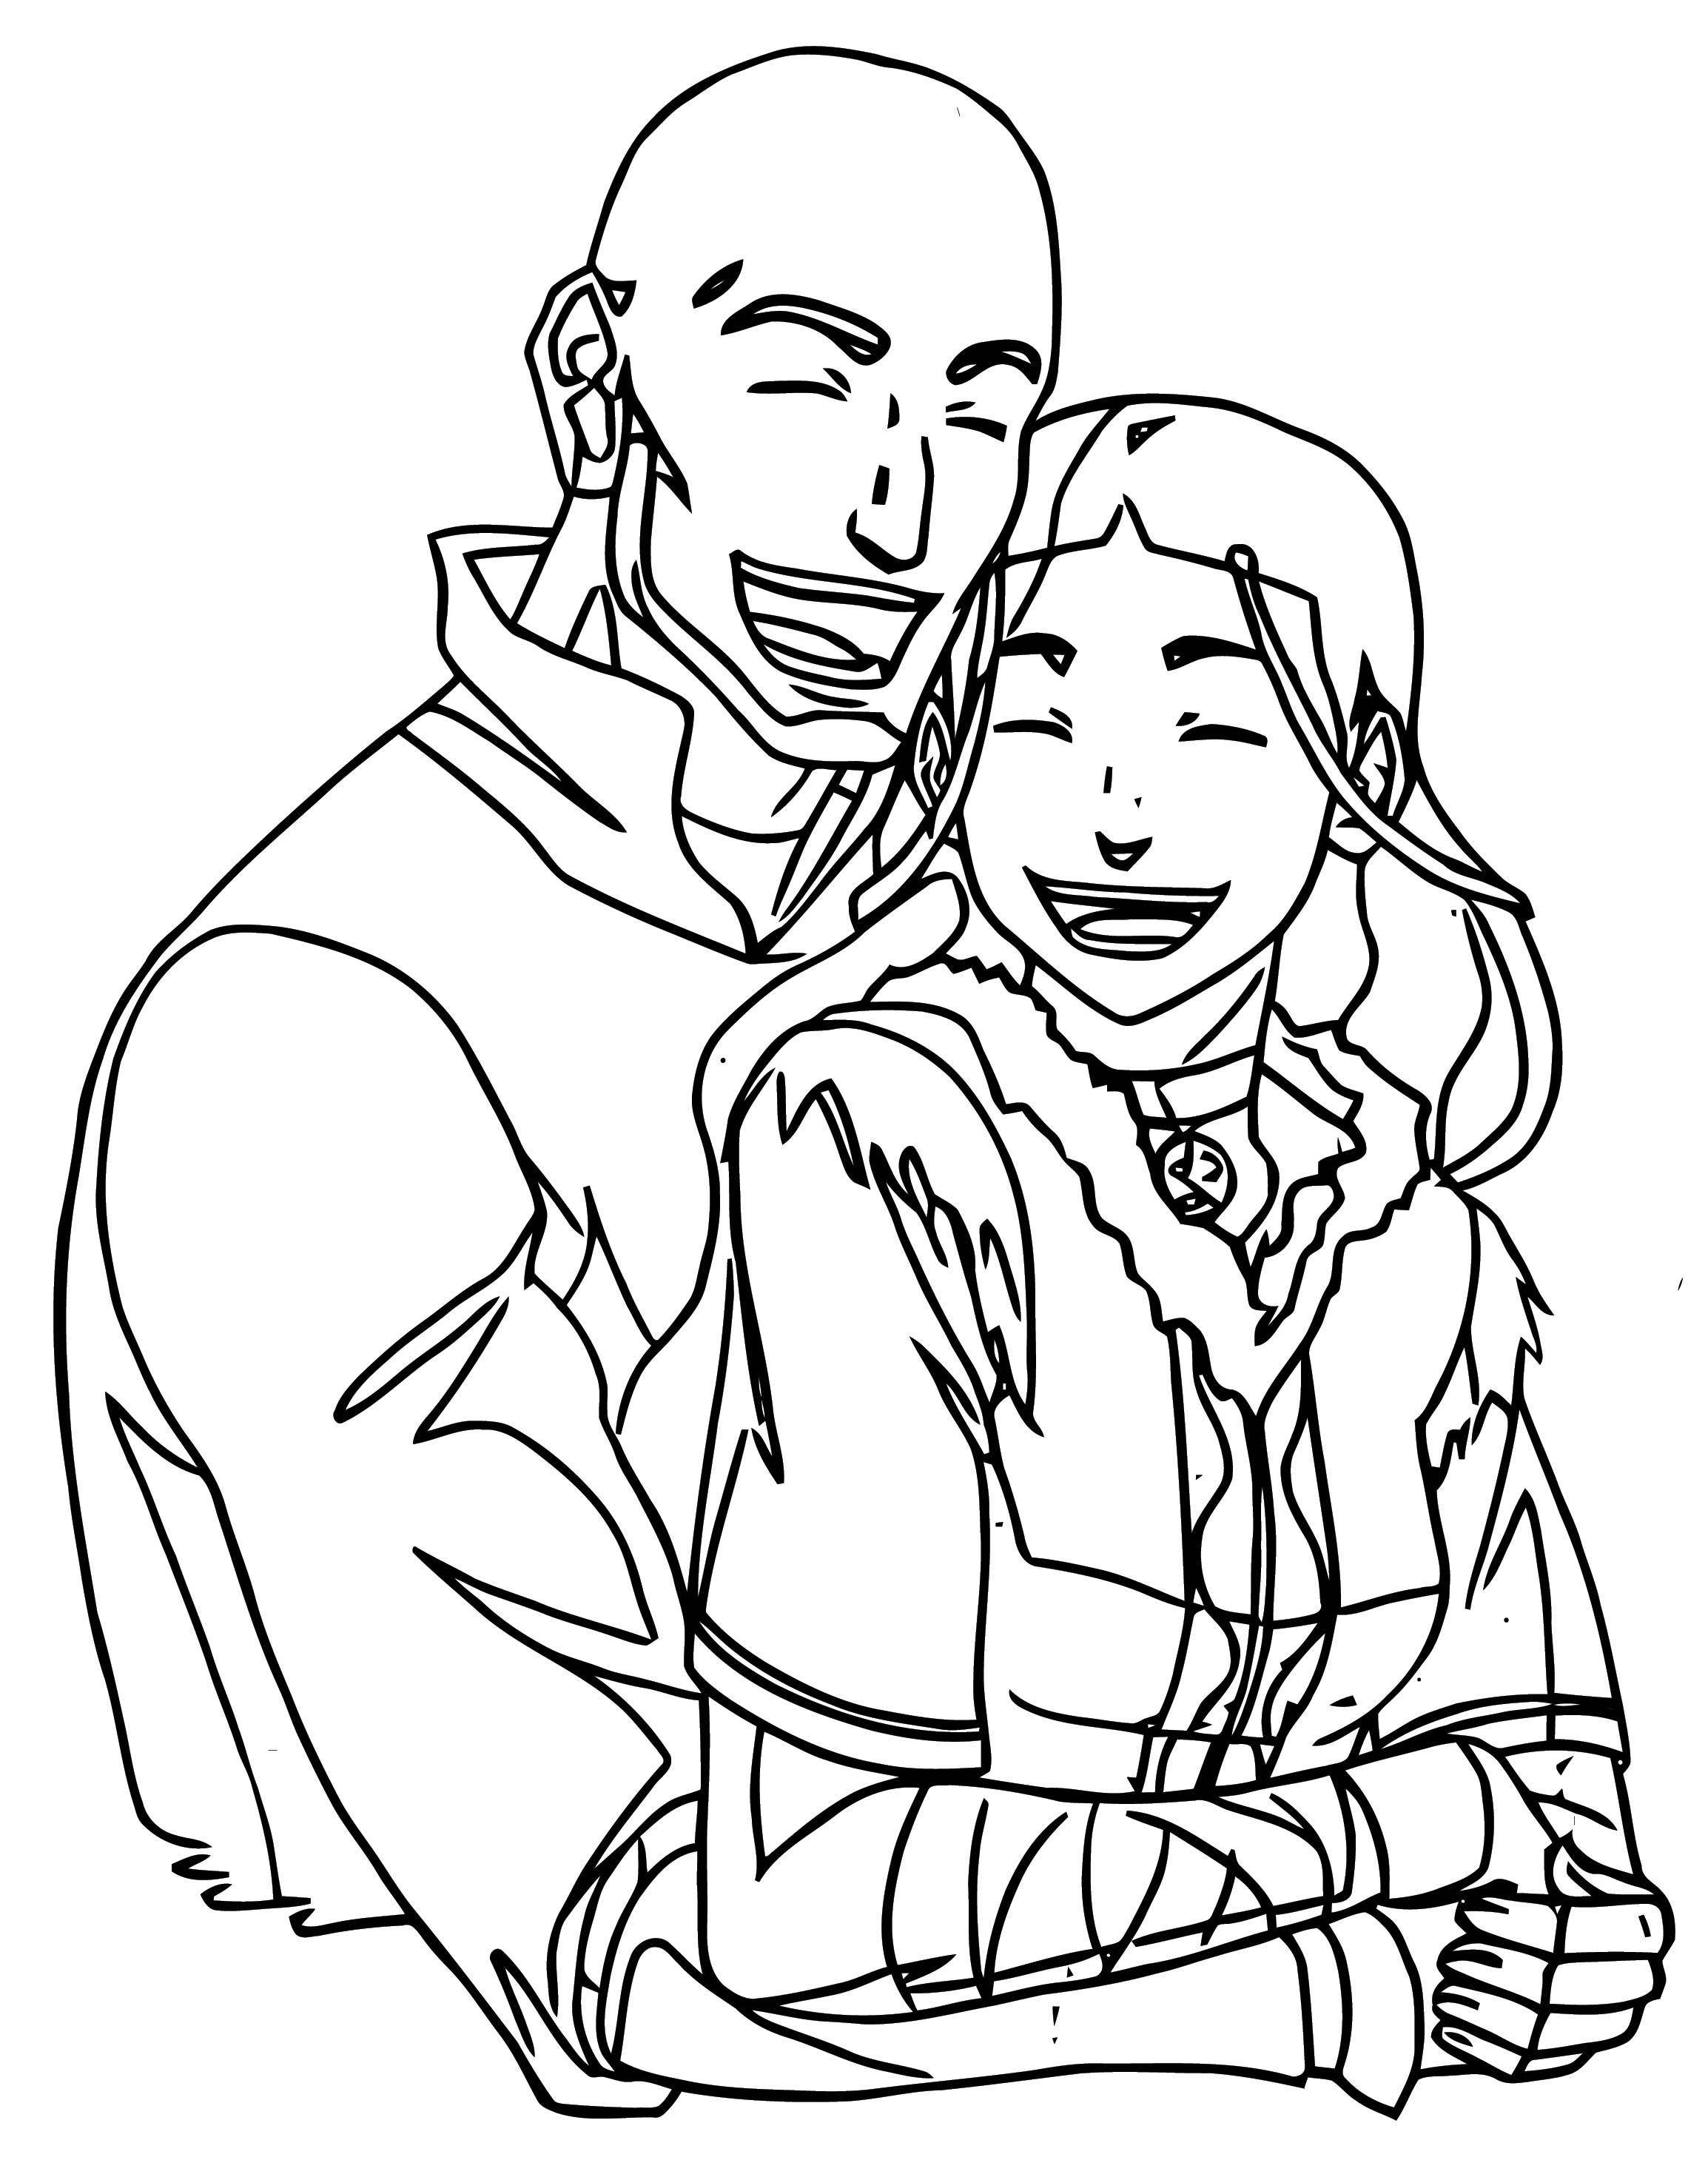 avatar aang coloring pages - photo#30